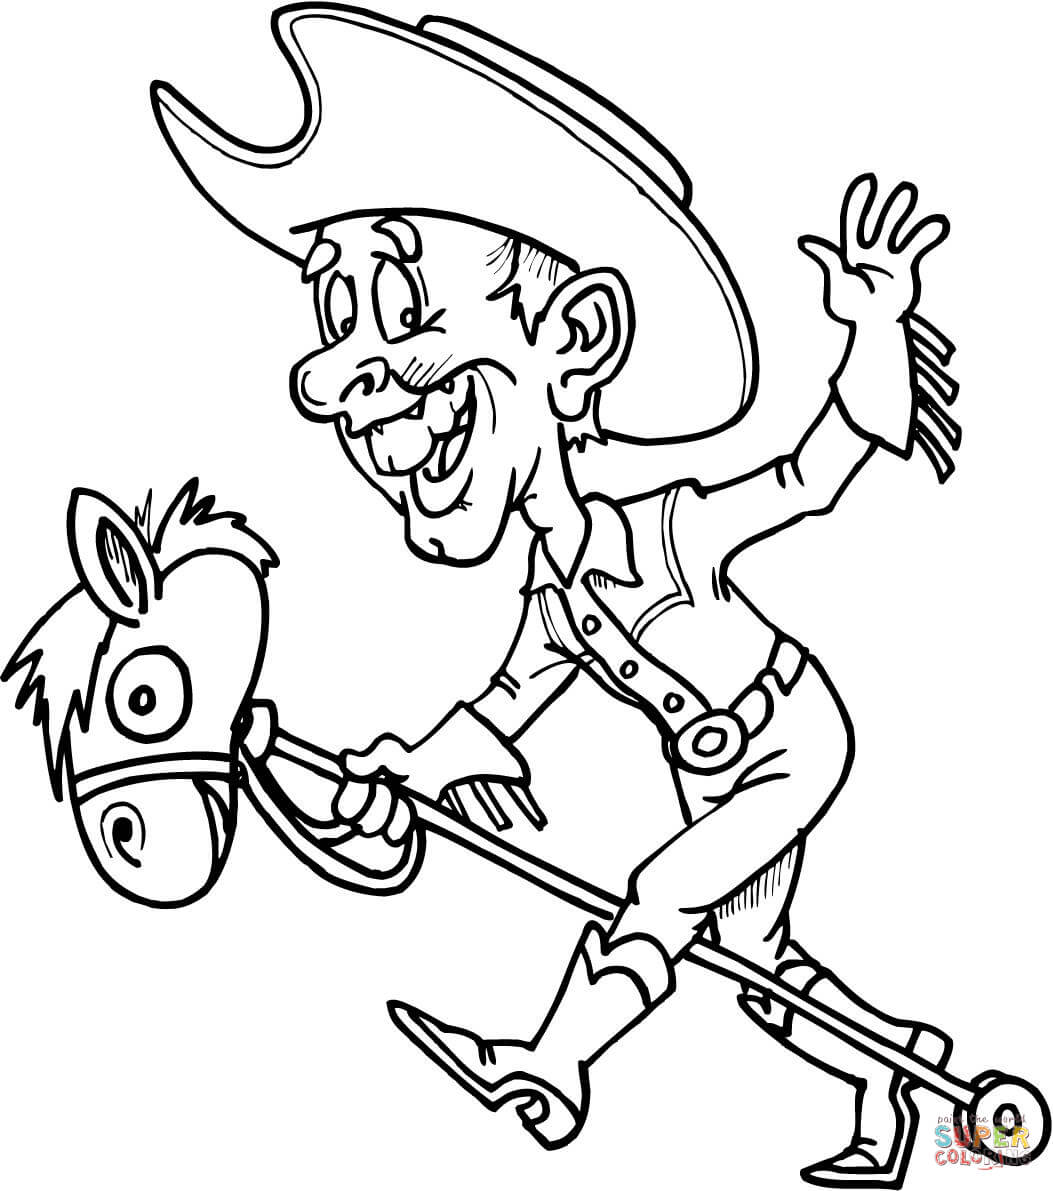 Cowboy On A Toy Horse Coloring Page